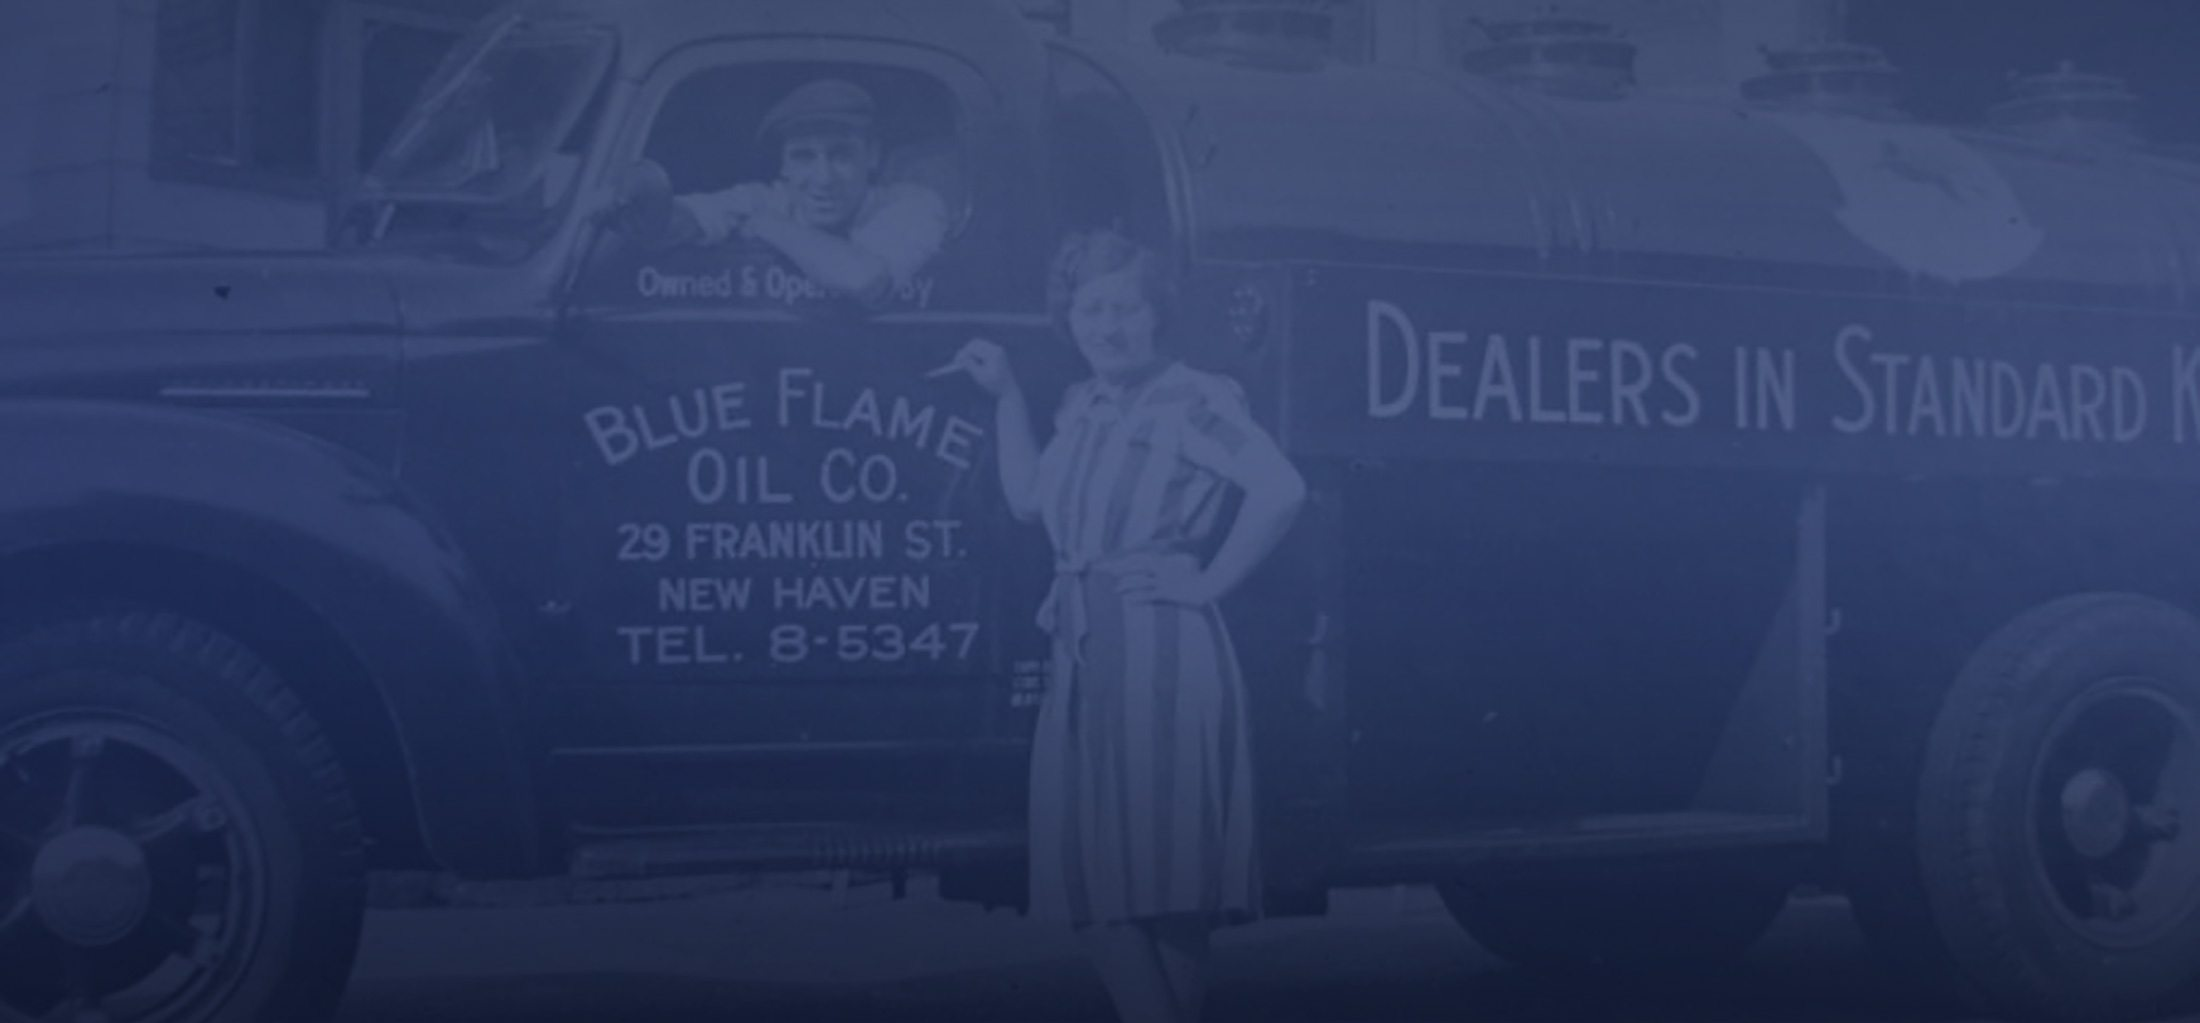 About Blue Flame Oil - New Haven, CT Oil Company